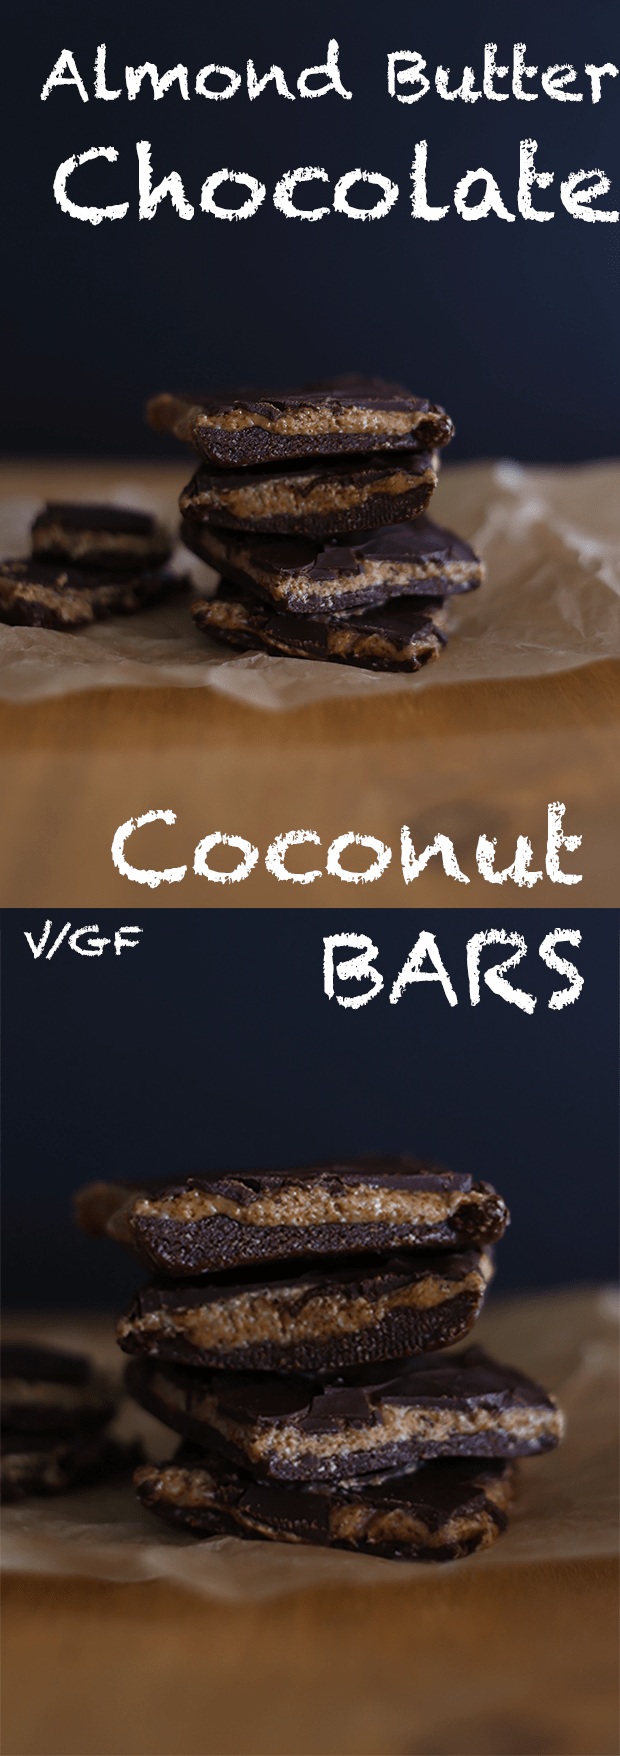 These Almond Butter Chocolate Coconut Bars are super easy to make, no baking required, chewy, creamy and crunchy as well as vegan + GF!   TwoRaspberries.com